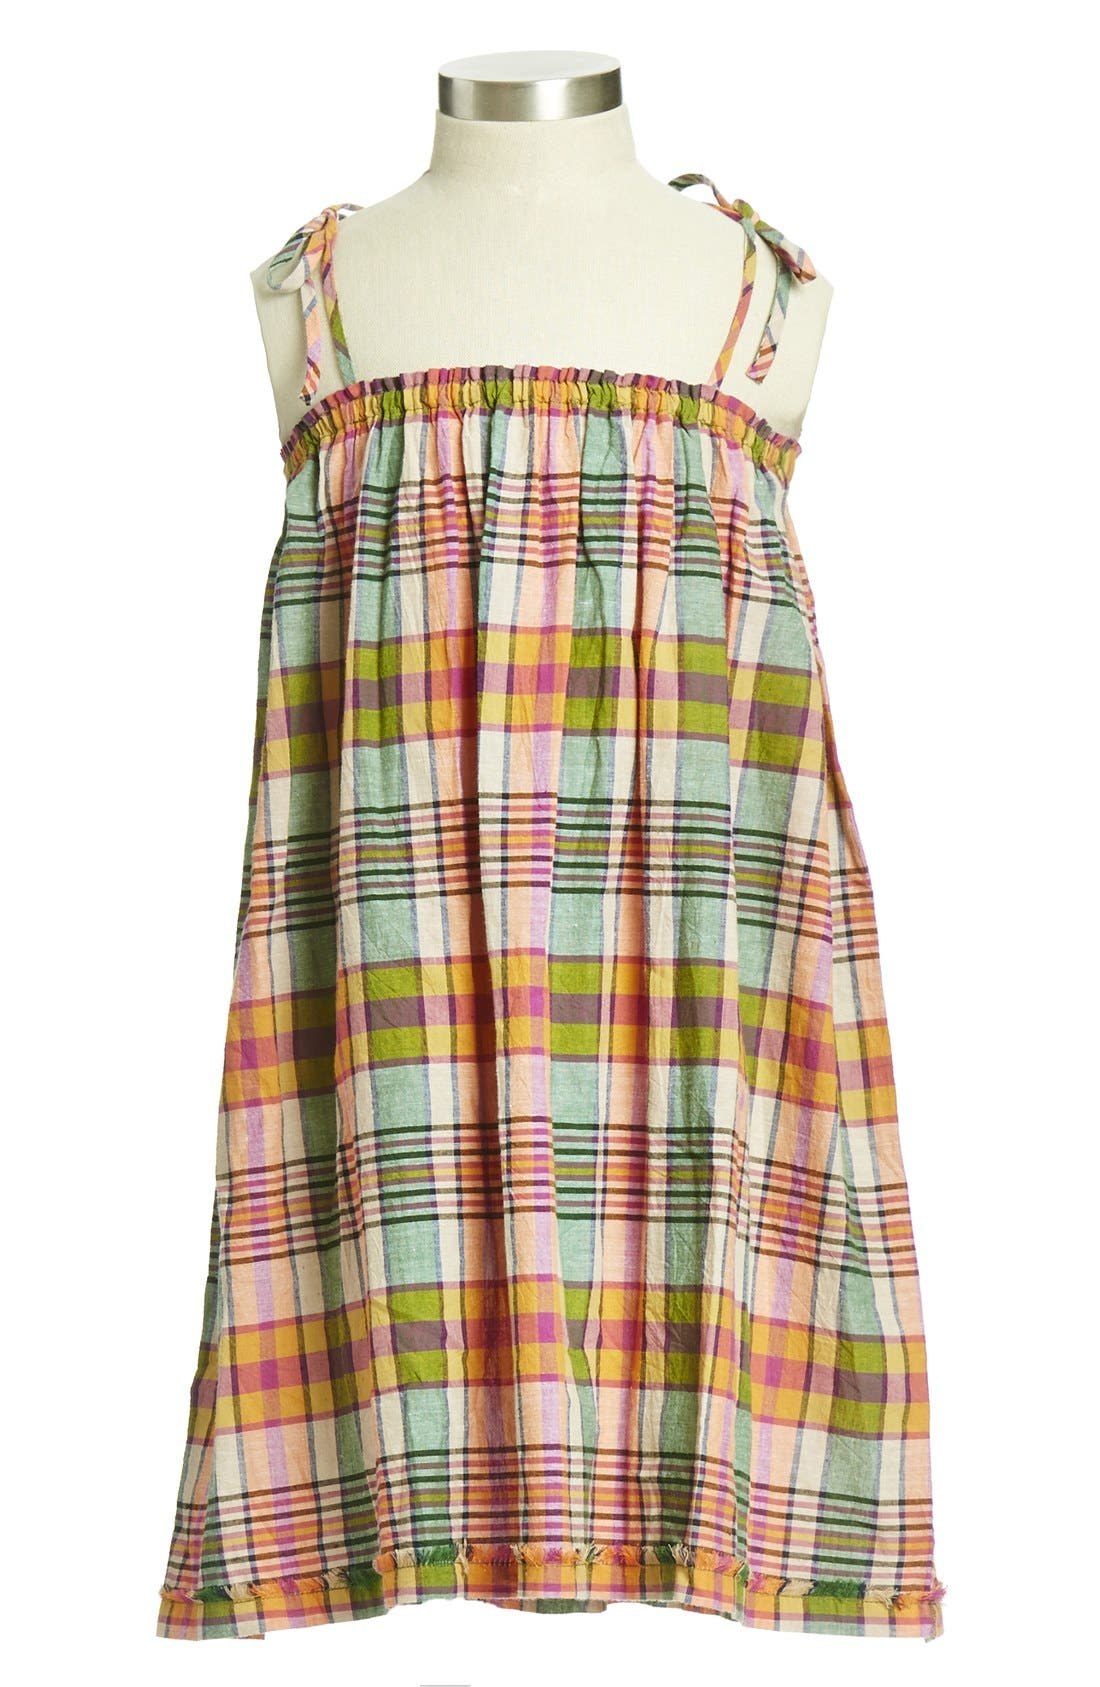 Alternate Image 1 Selected - Peek 'Collette' Plaid Cotton Dress (Toddler Girls, Little Girls & Big Girls)